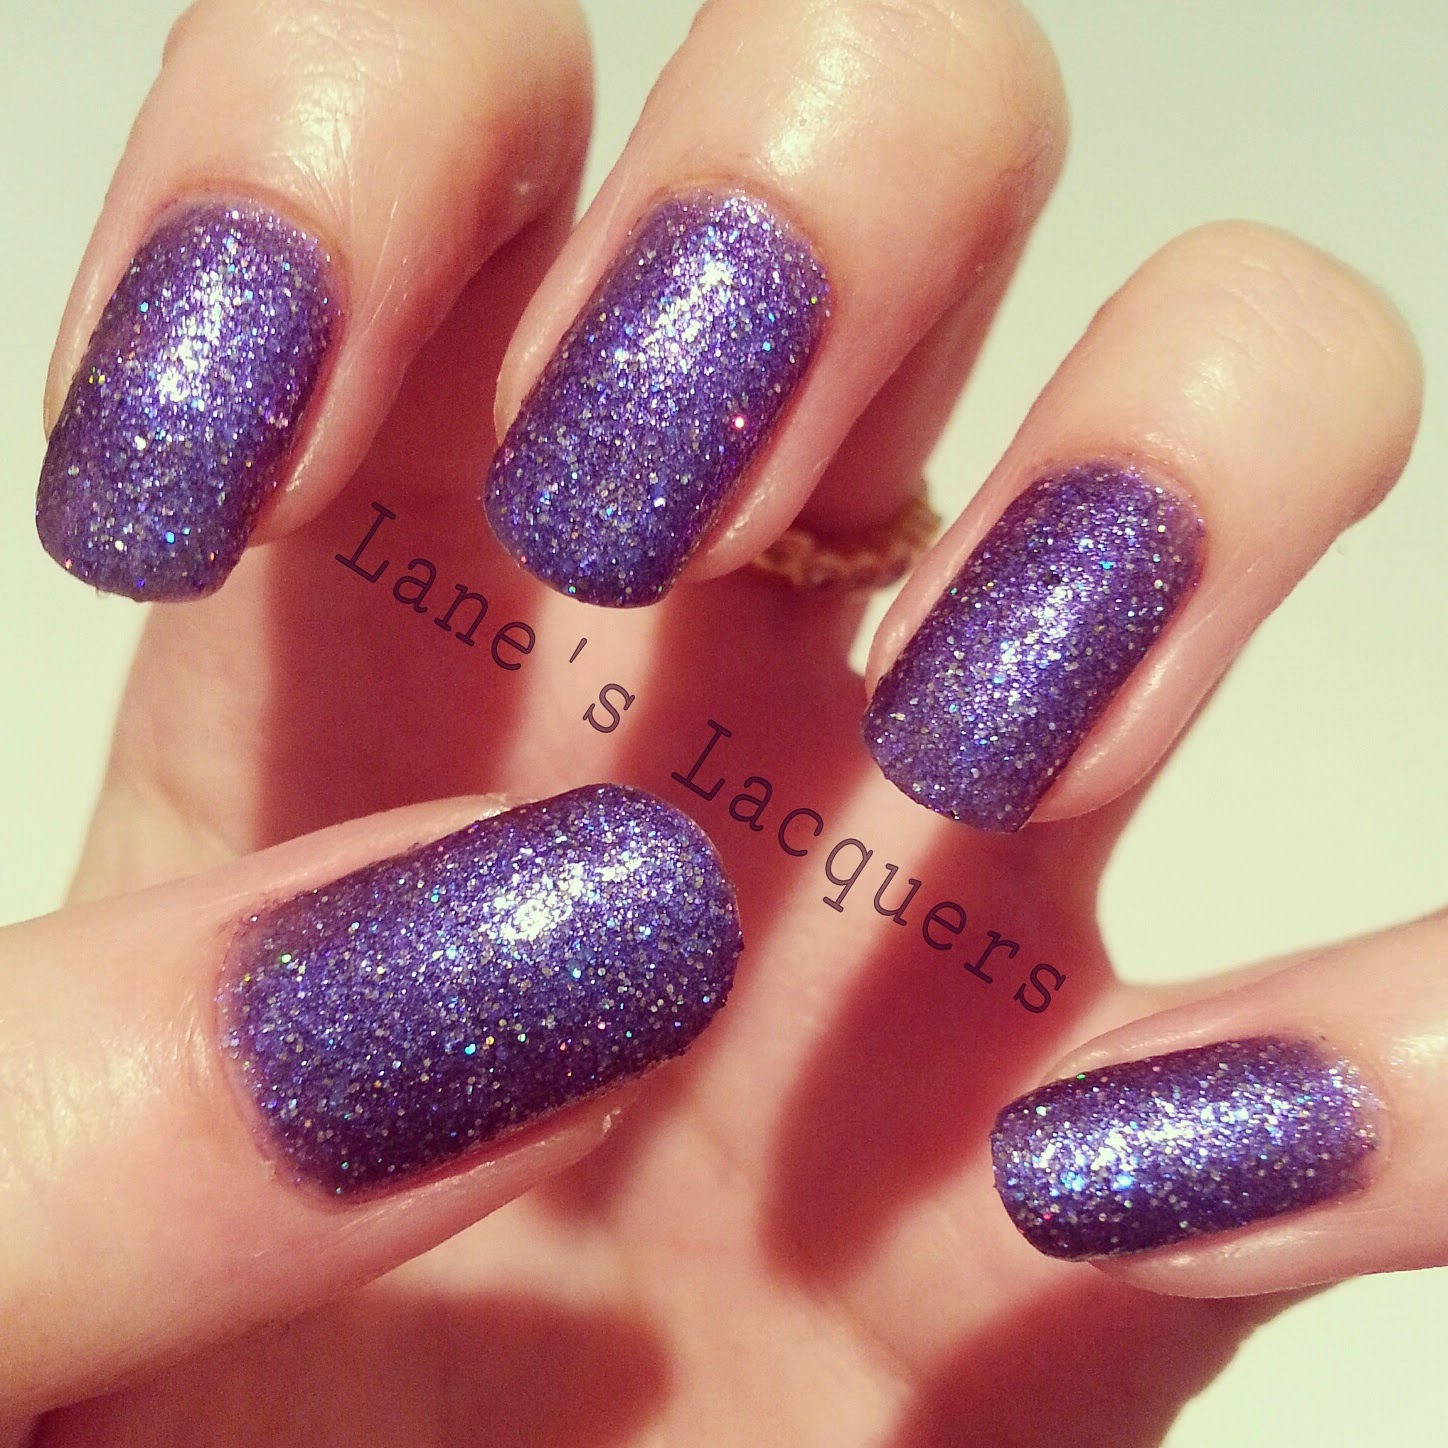 new-barry-m-glitterati-fashion-icon-swatch-manicure